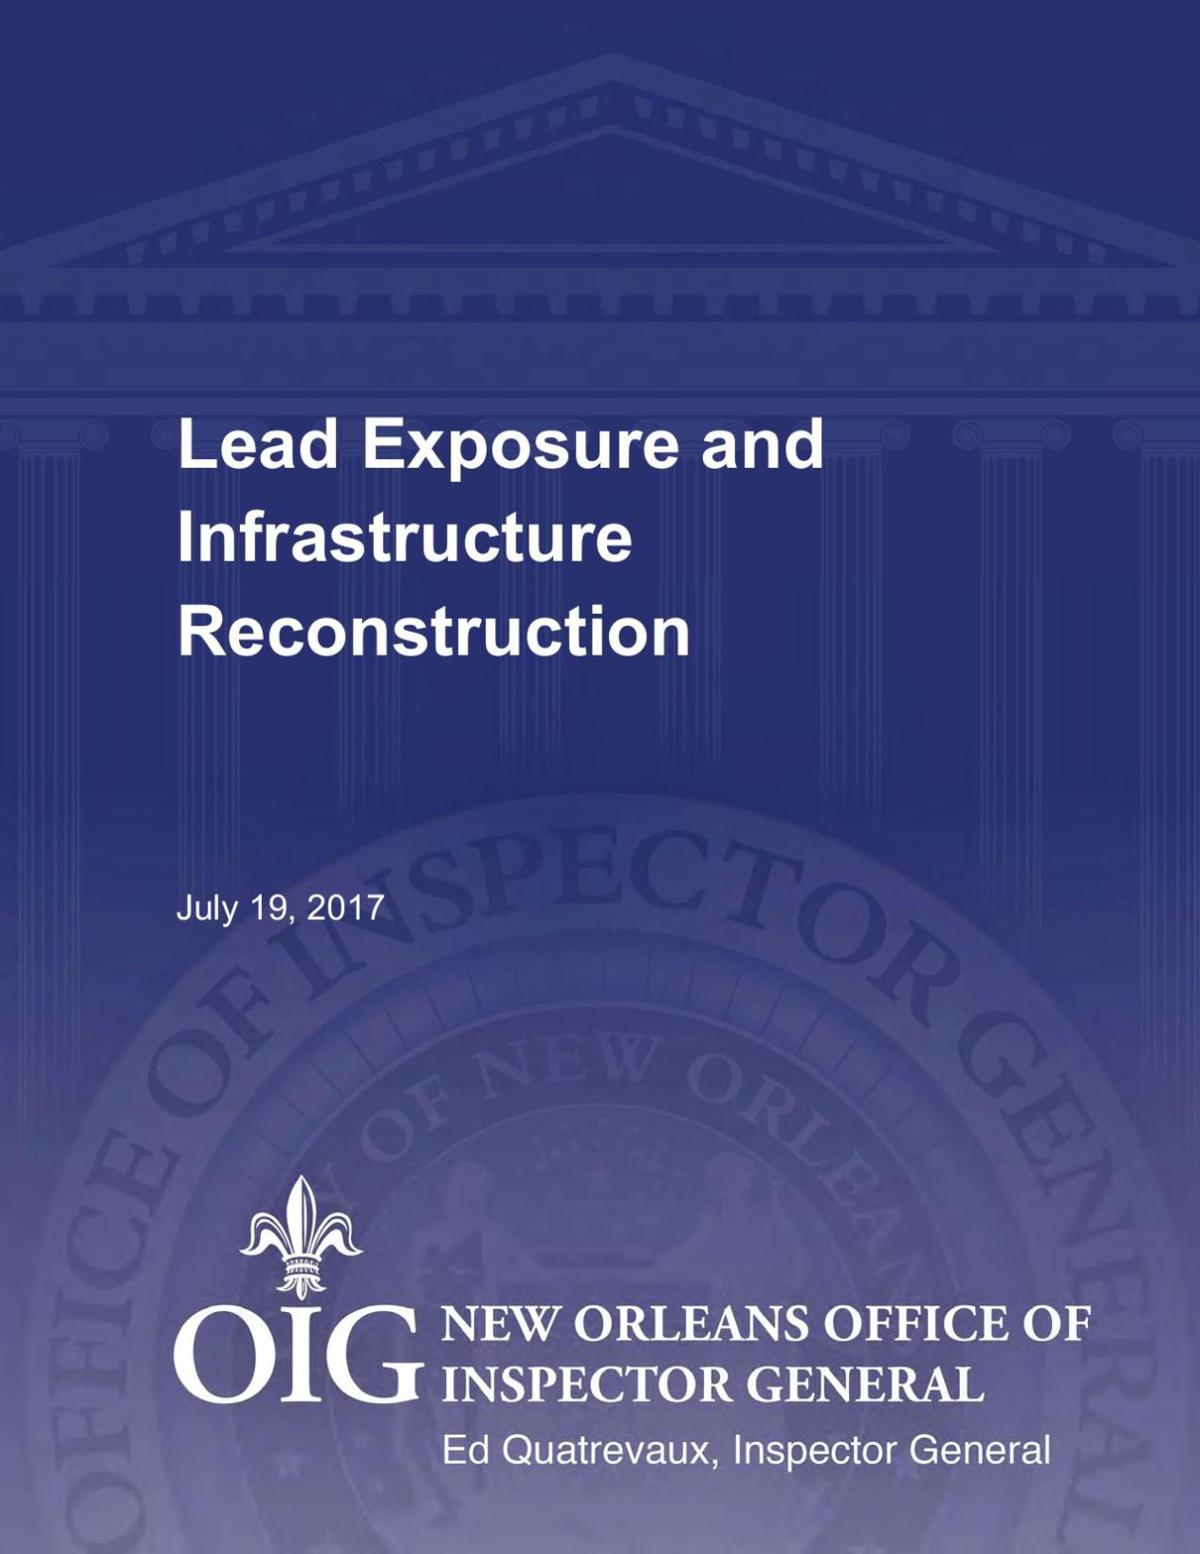 Office of Inspector General's report on Sewerage and Water Board's infrastructure program and concerns about lead contamination